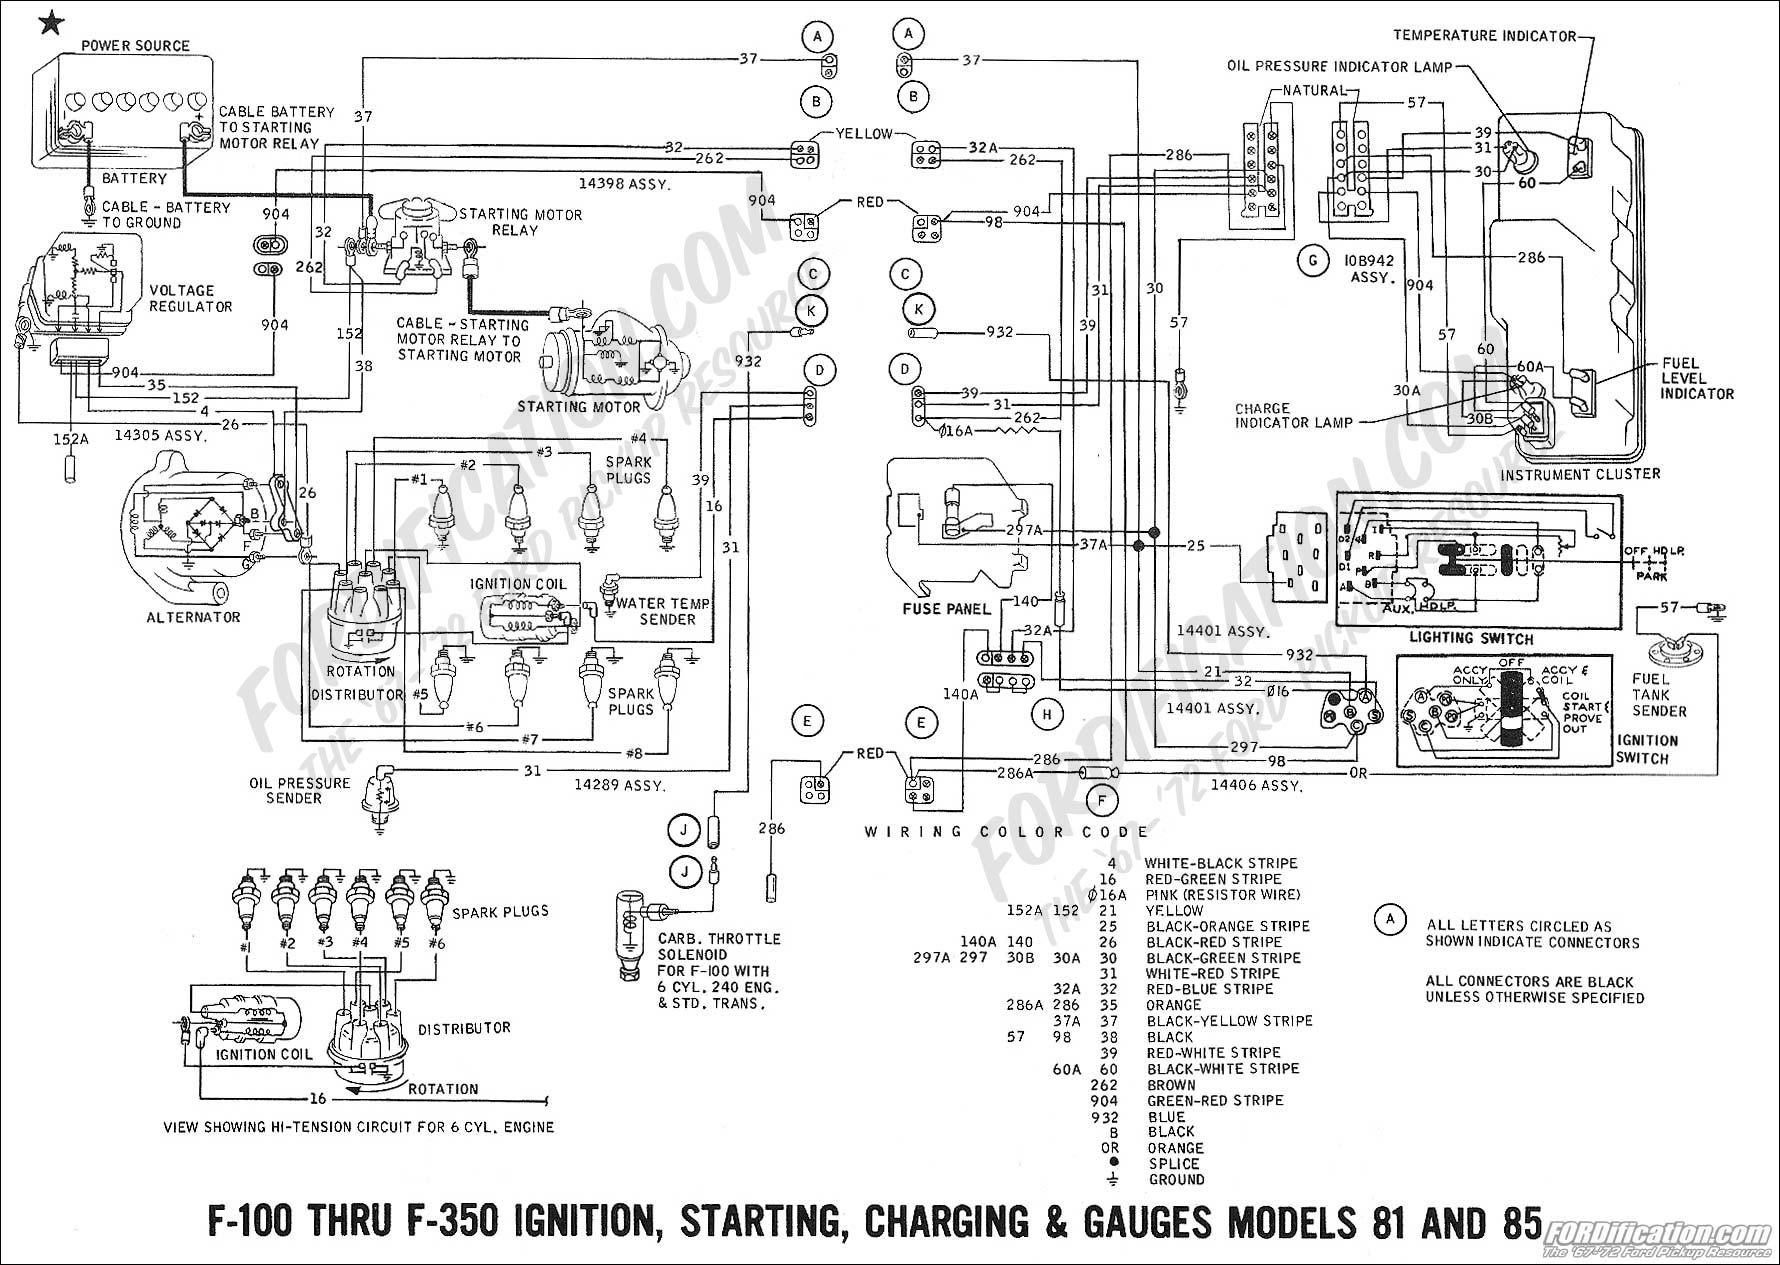 wiring 1969charging2?qualityd806stripdall ford e350 wiring diagram efcaviation com 1998 ford e350 fuse box diagram at bakdesigns.co